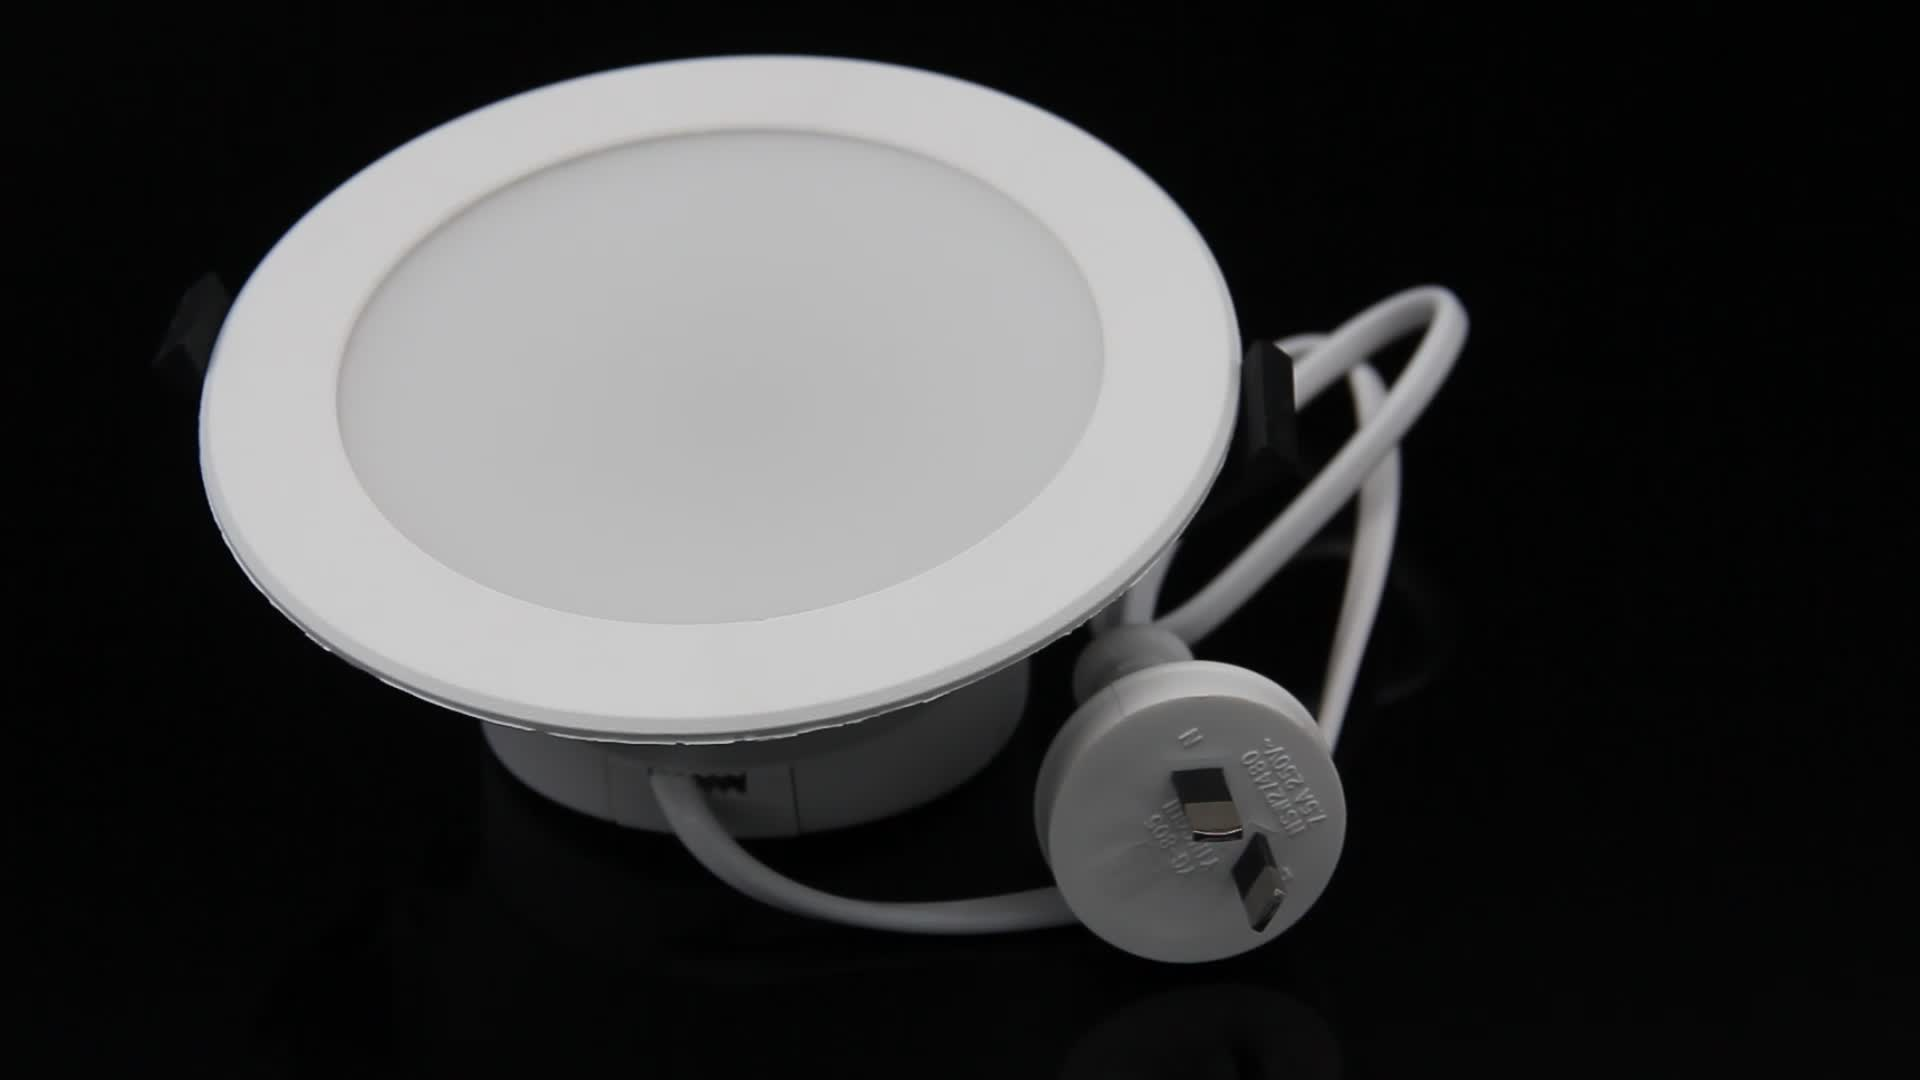 Led downlights australian standard SAA approved smart wifi RGBW led downlights, voice controlled by Alexa